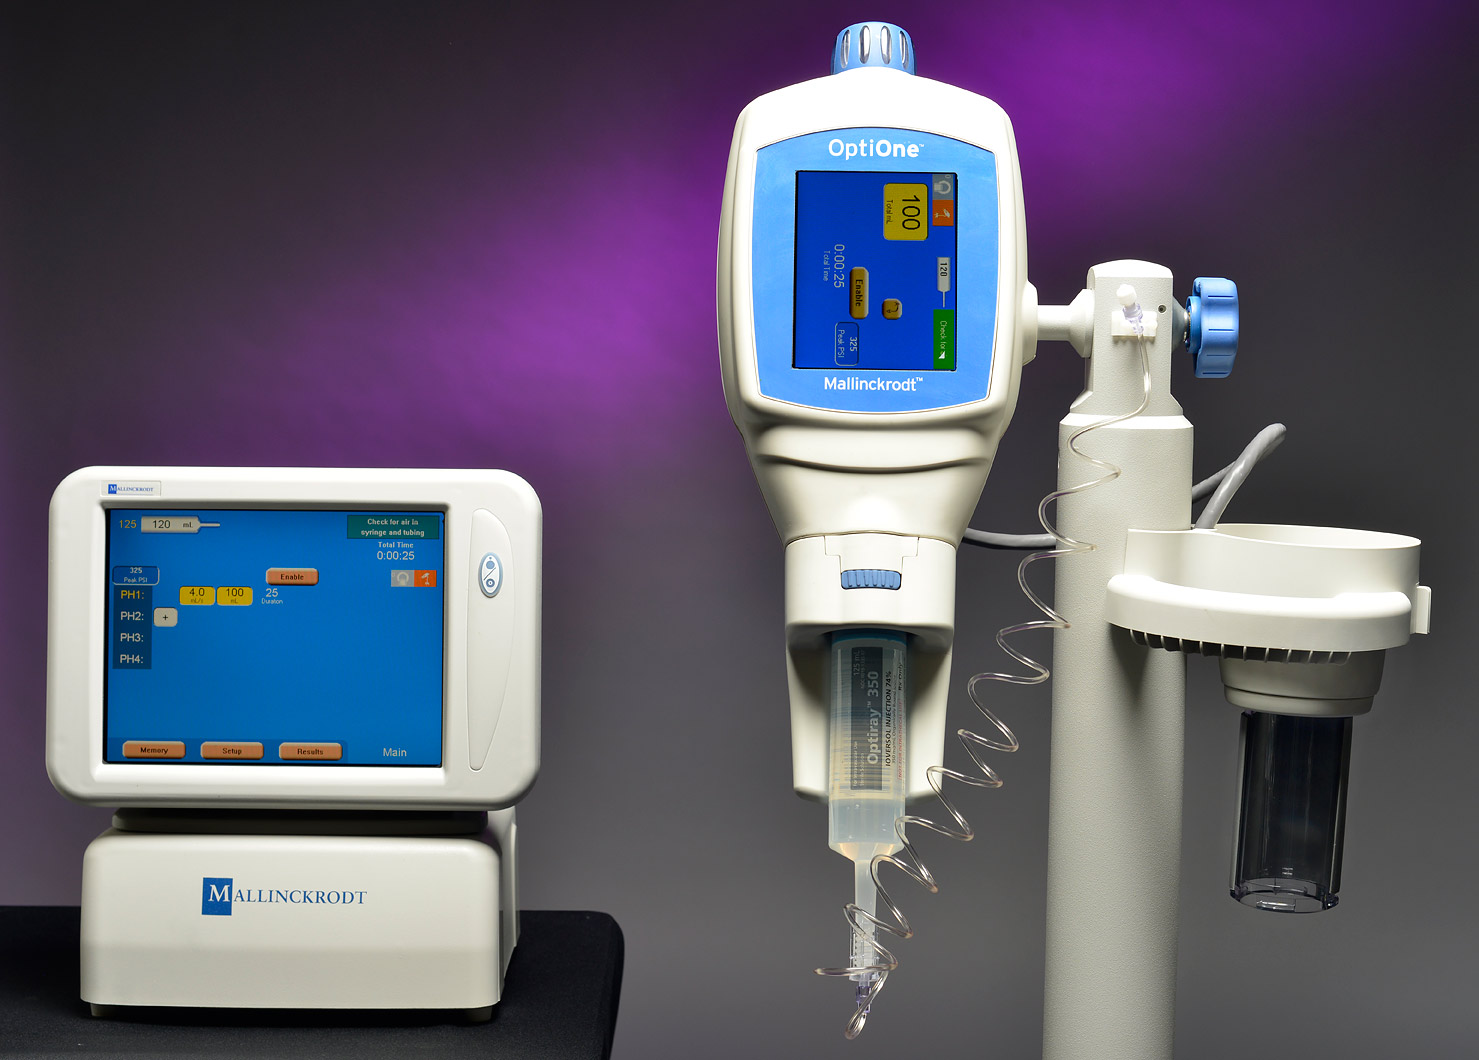 mallinckrodt medical device product shot